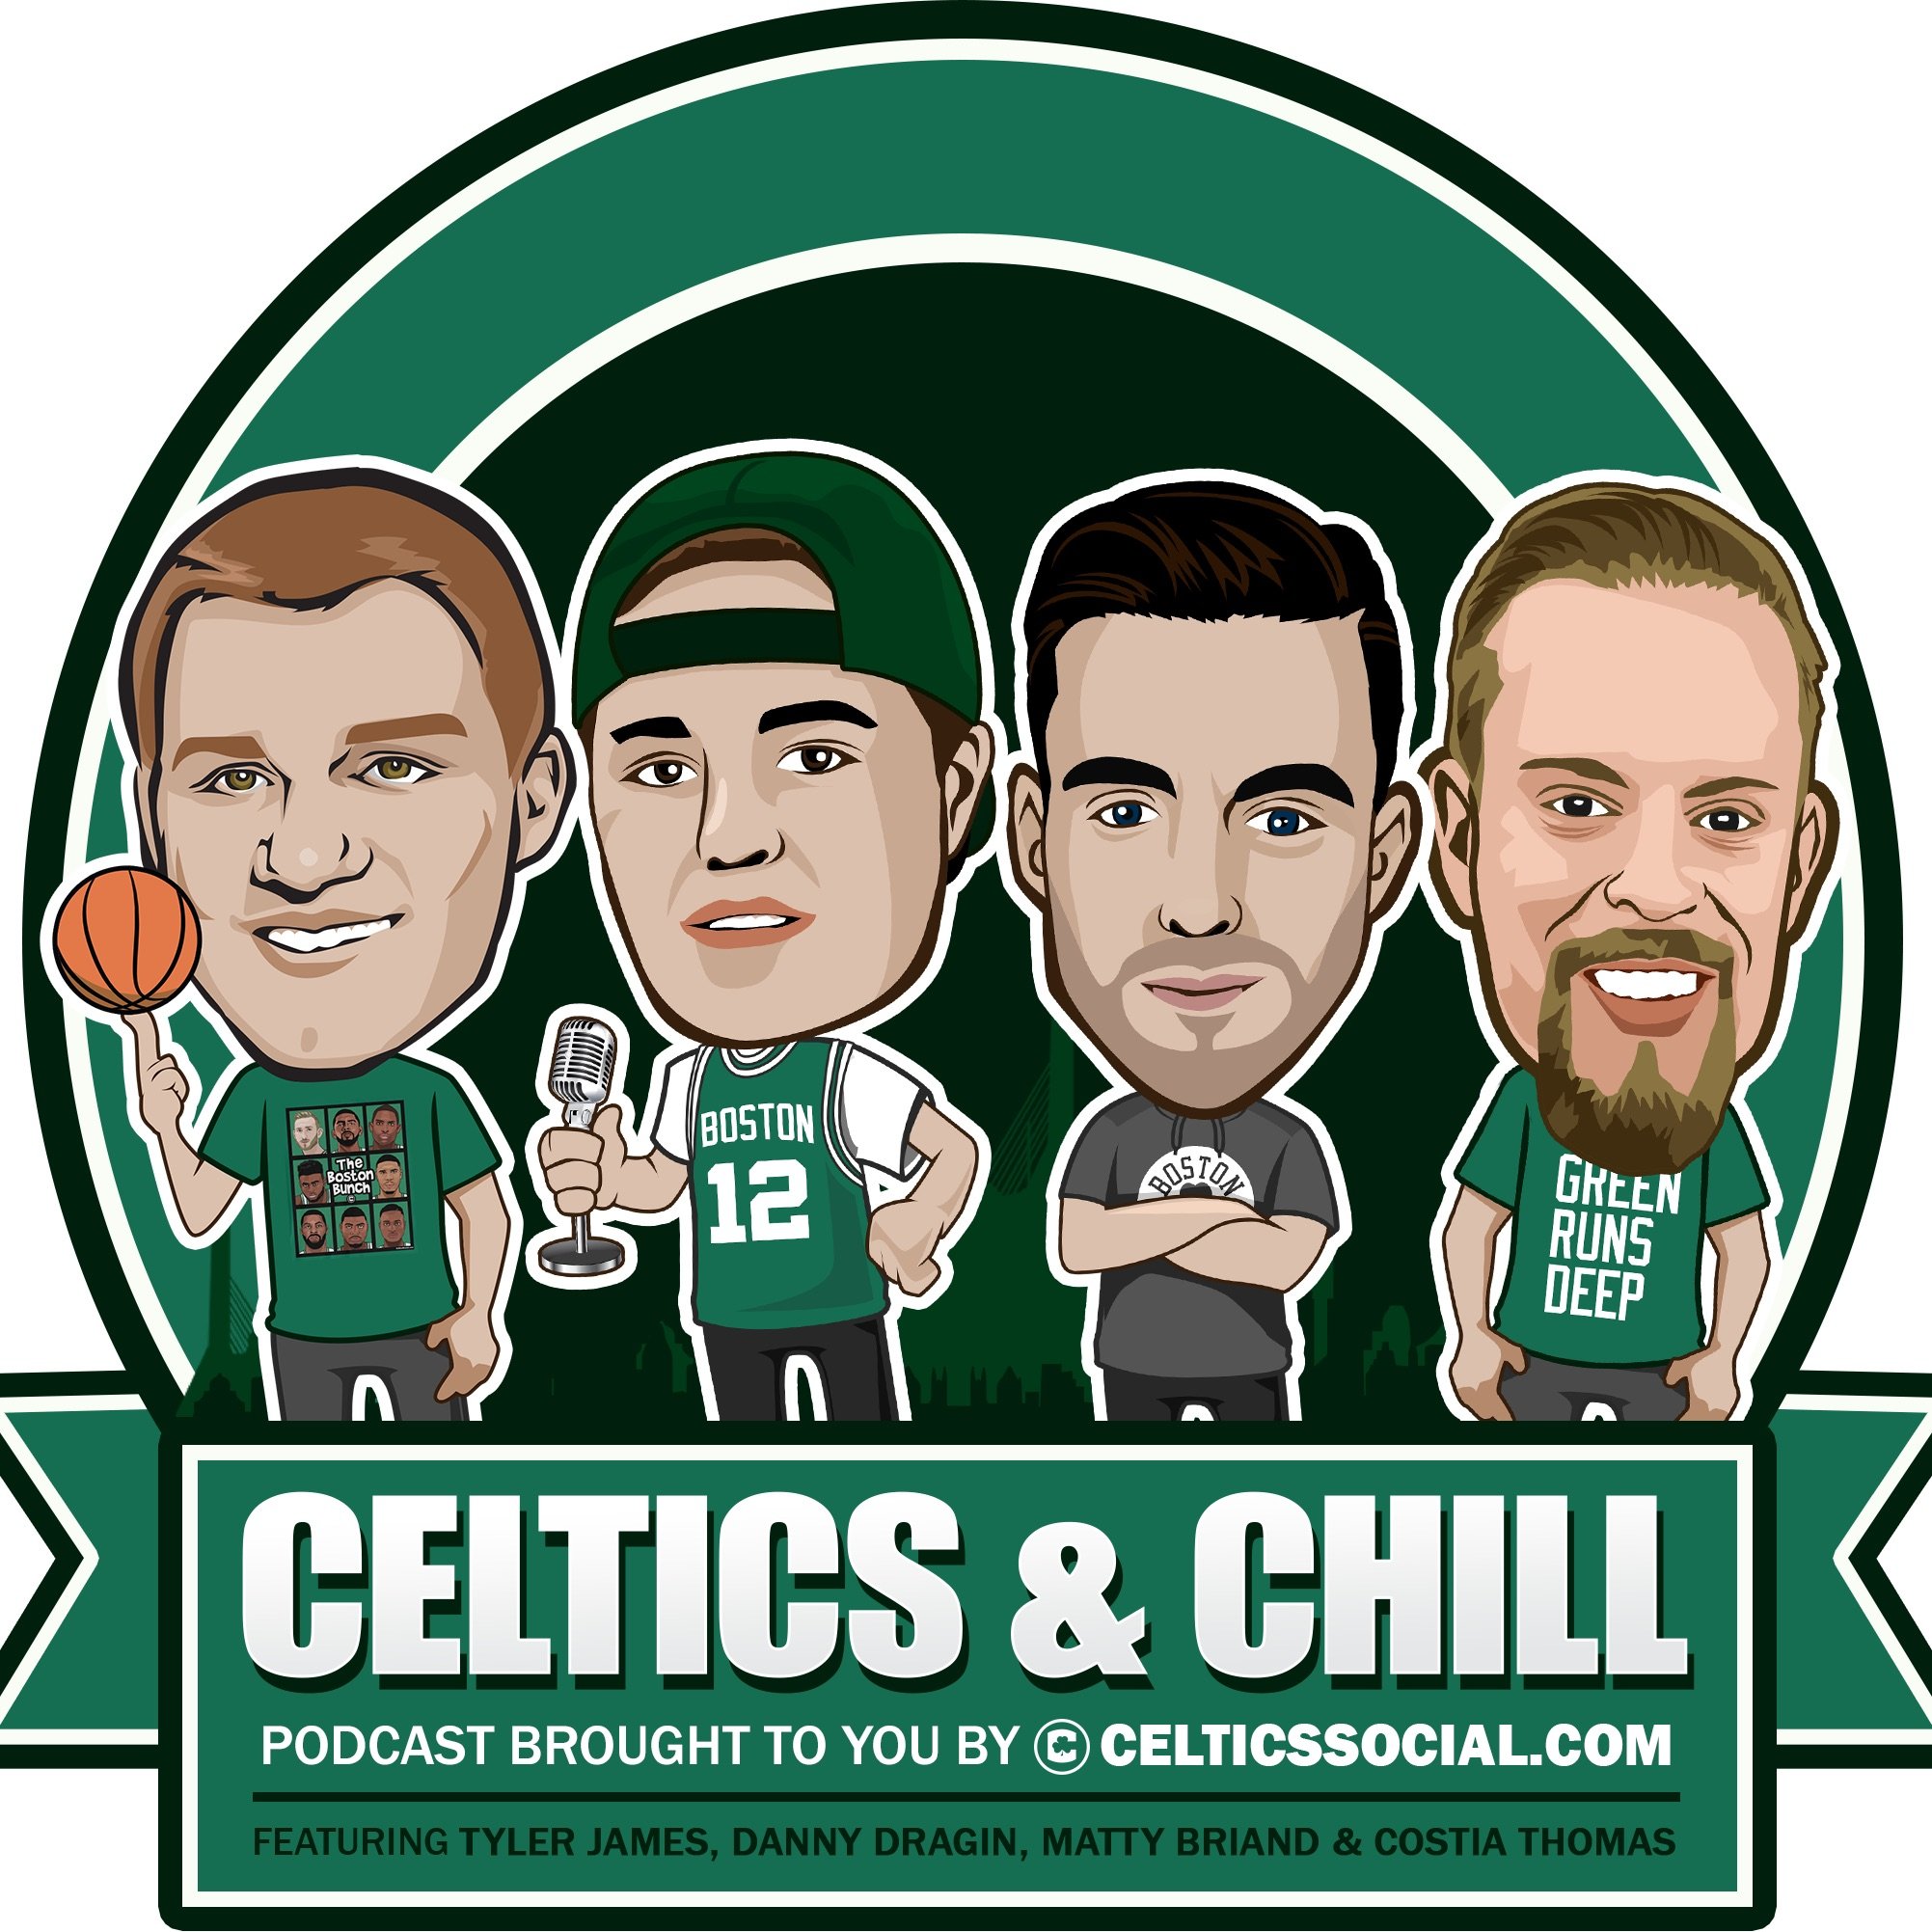 #17 - Potential Sweep, Rozier at LeBron level, Gucci Maine vs Meek Mill, & the Celtics as Avengers!